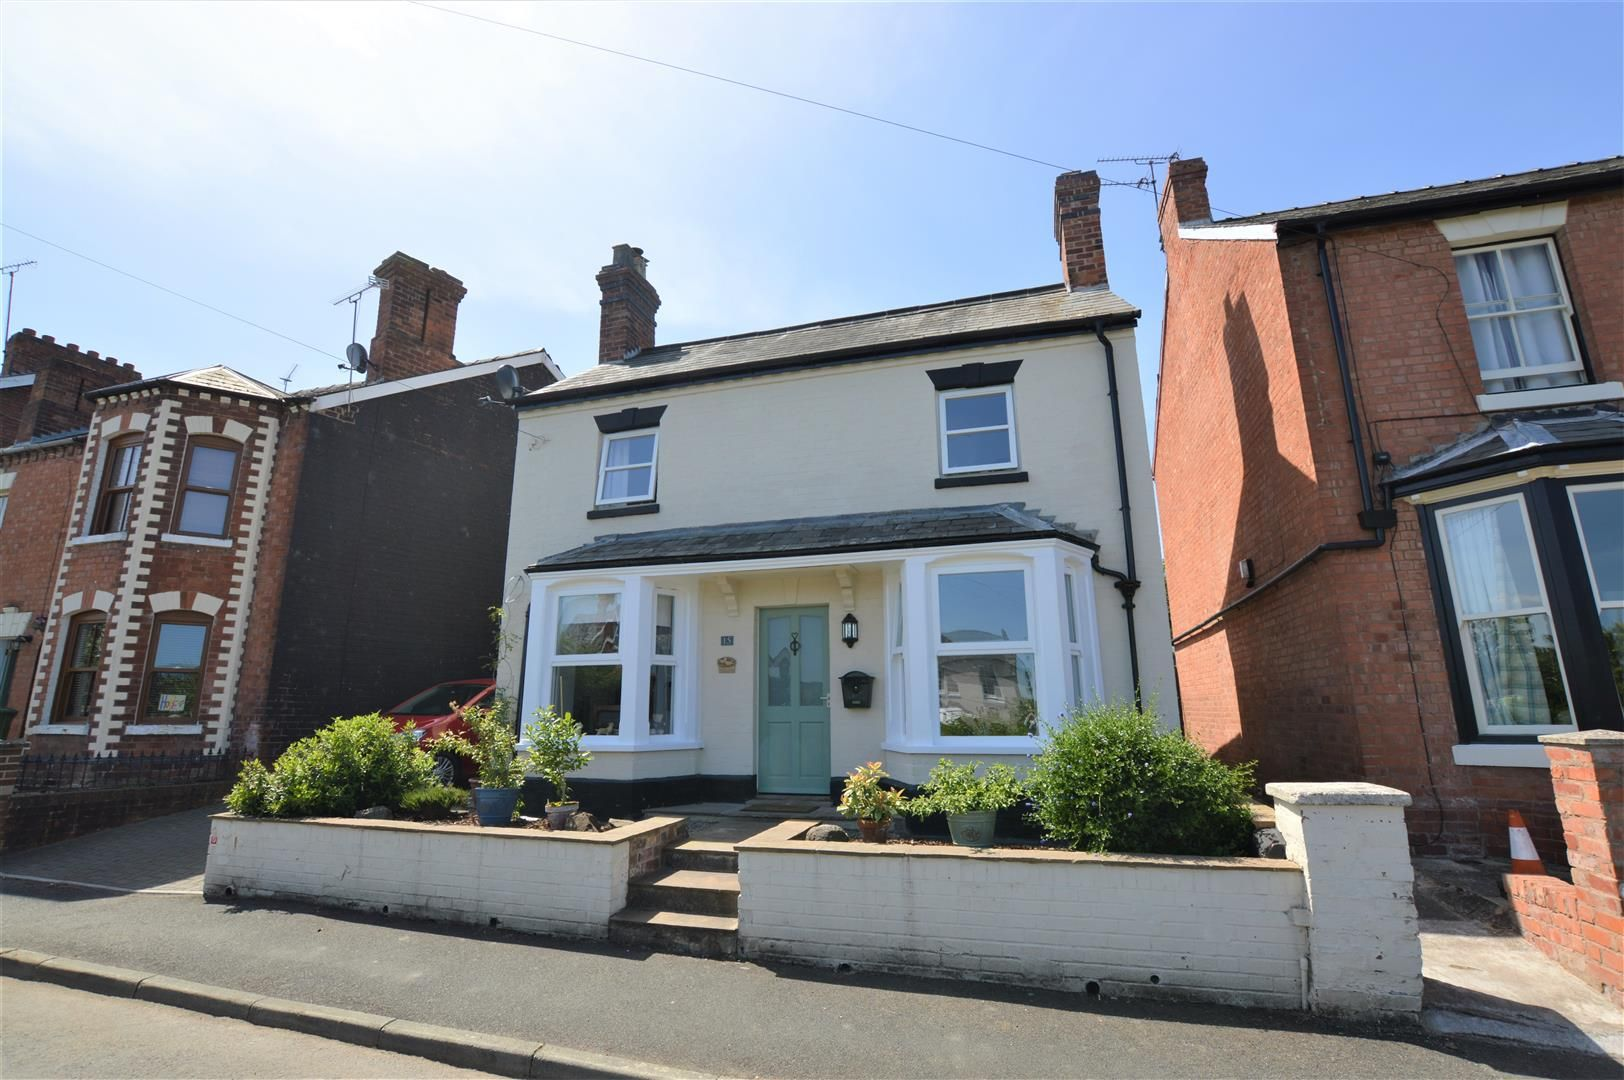 2 bed town-house for sale in Leominster, HR6